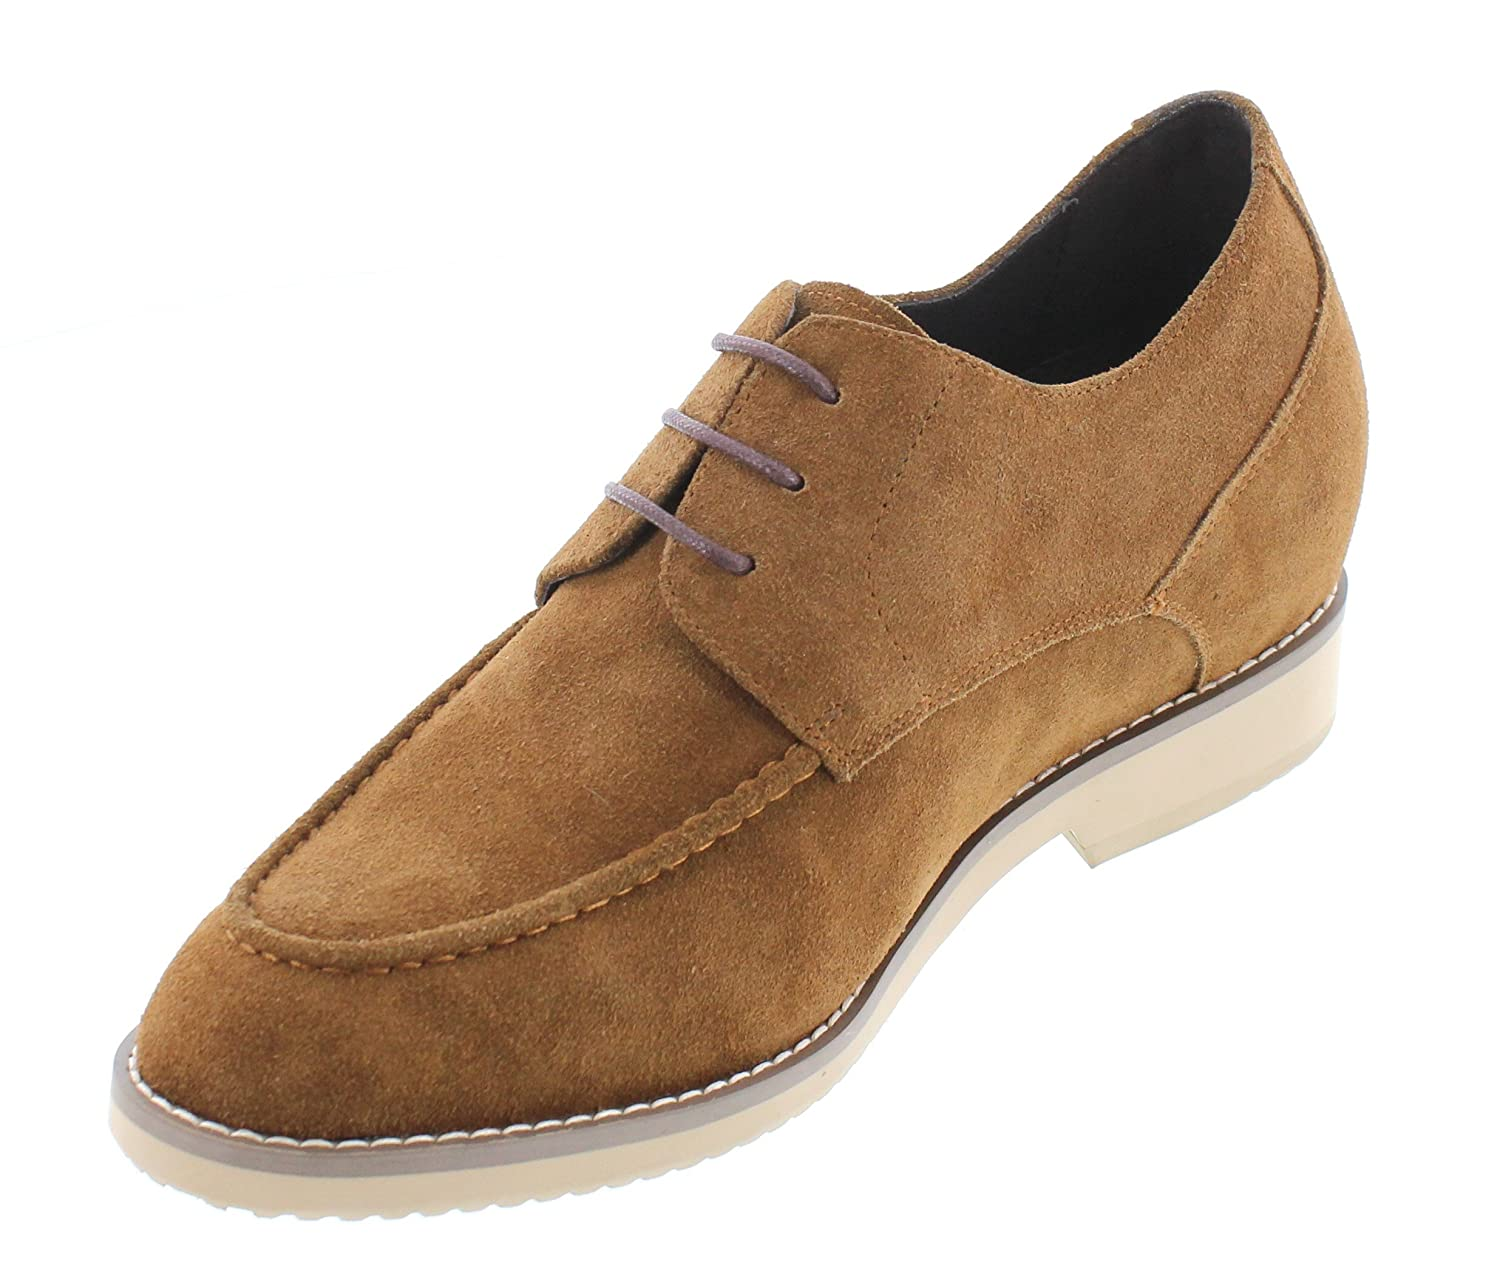 T66092-2.8 inches Taller - height Increasing Elevator Shoes - Nubuck Tobacco Lace-up Dress Shoes